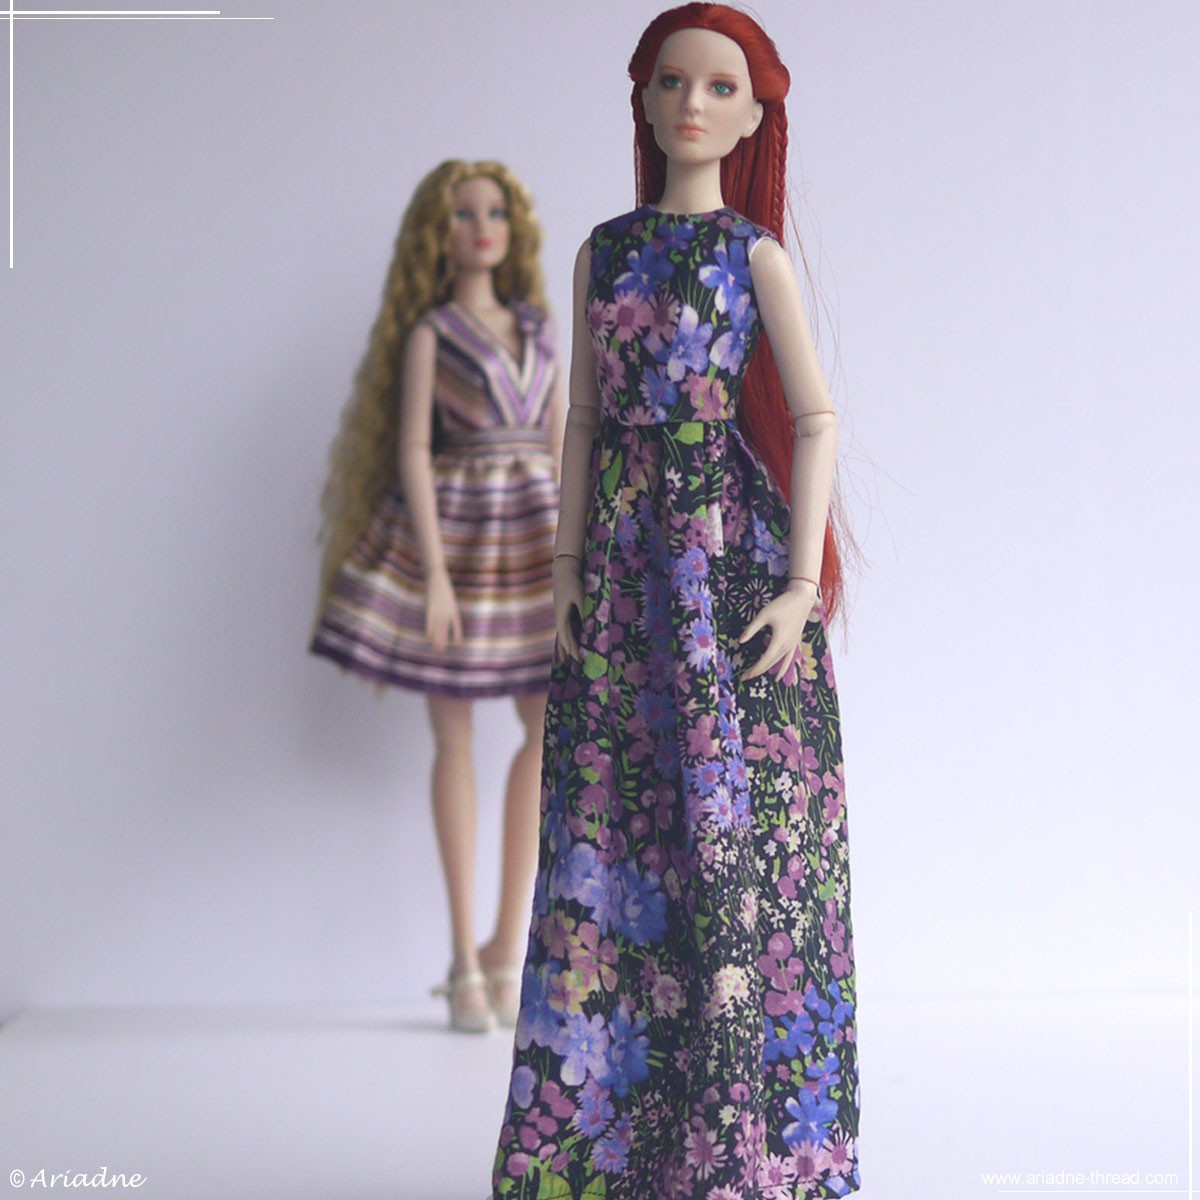 Tonner Ferse in outfit, inspired by Alberta Ferretti